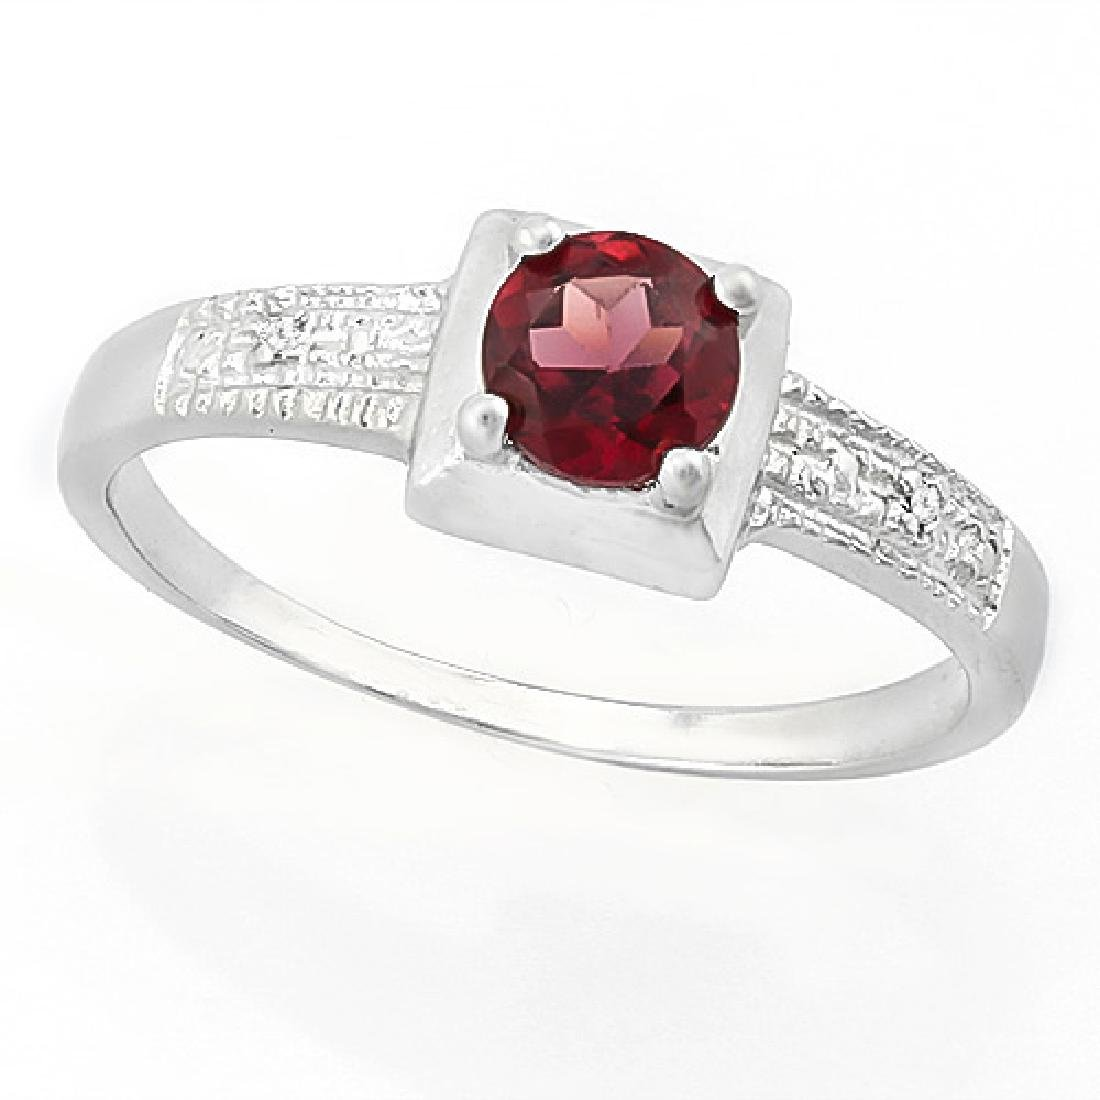 3/5 CARAT GARNET & DIAMOND 925 STERLING SILVER RING